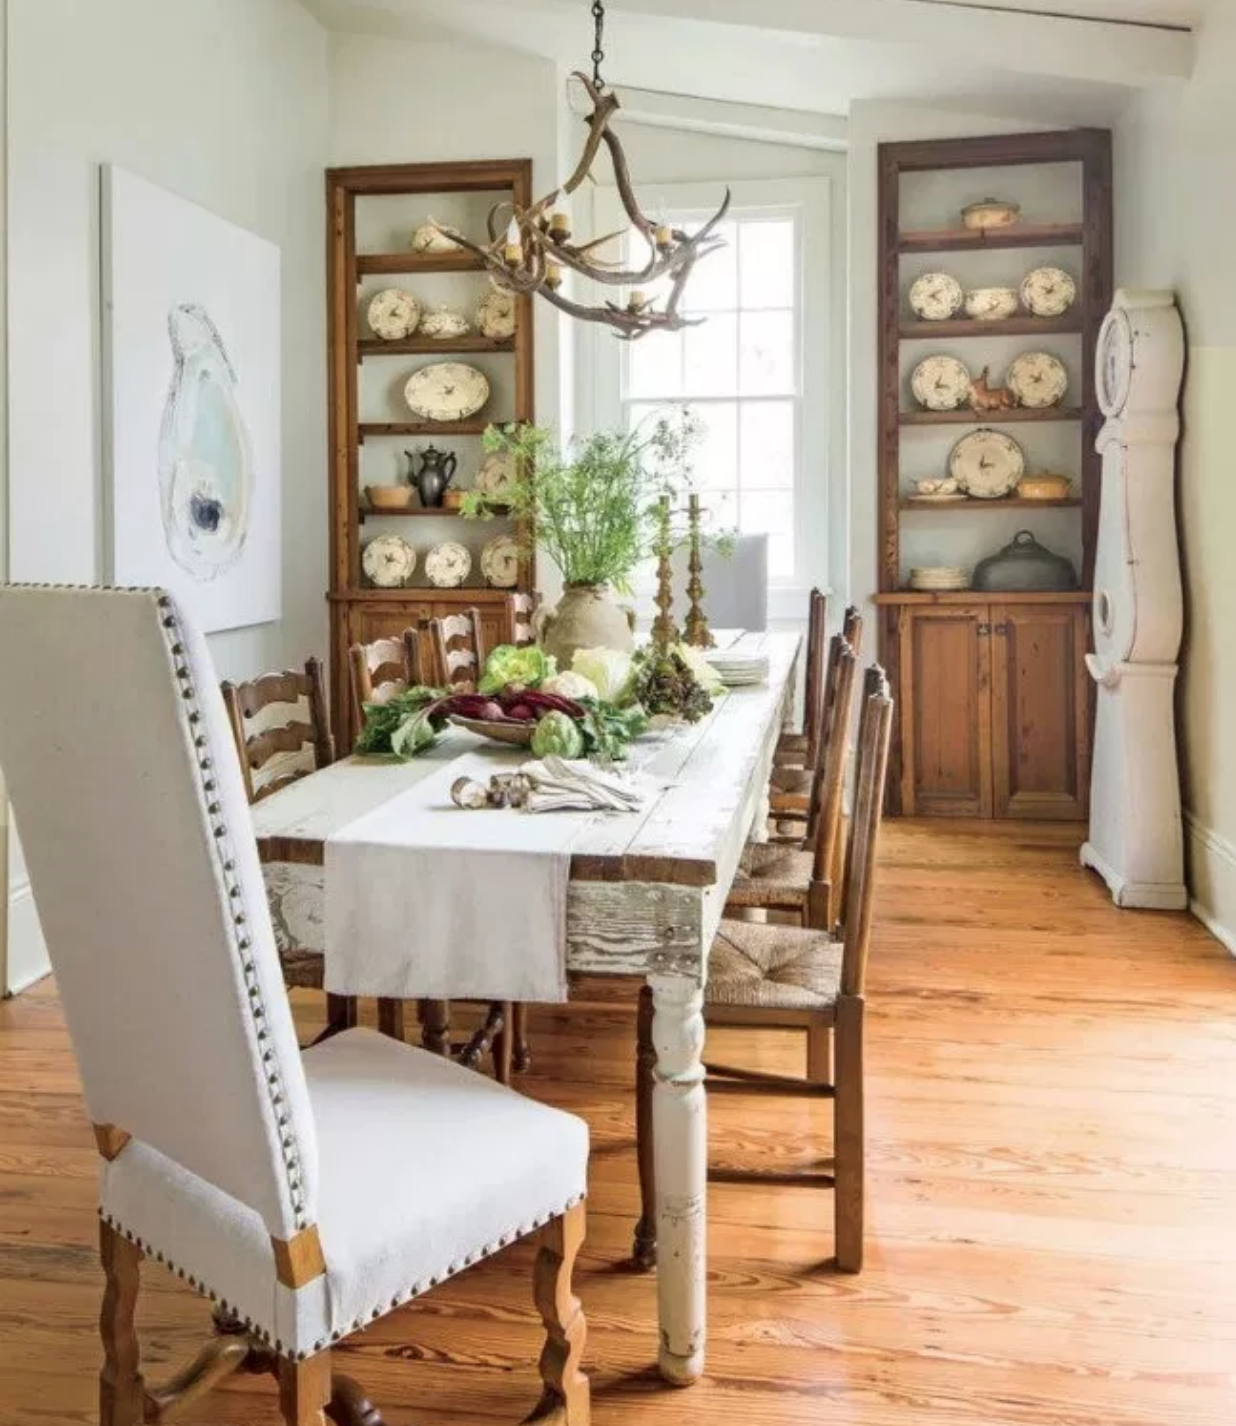 The 15 Most Beautiful Dining Rooms on Pinterest ... on Beautiful Room  id=14143